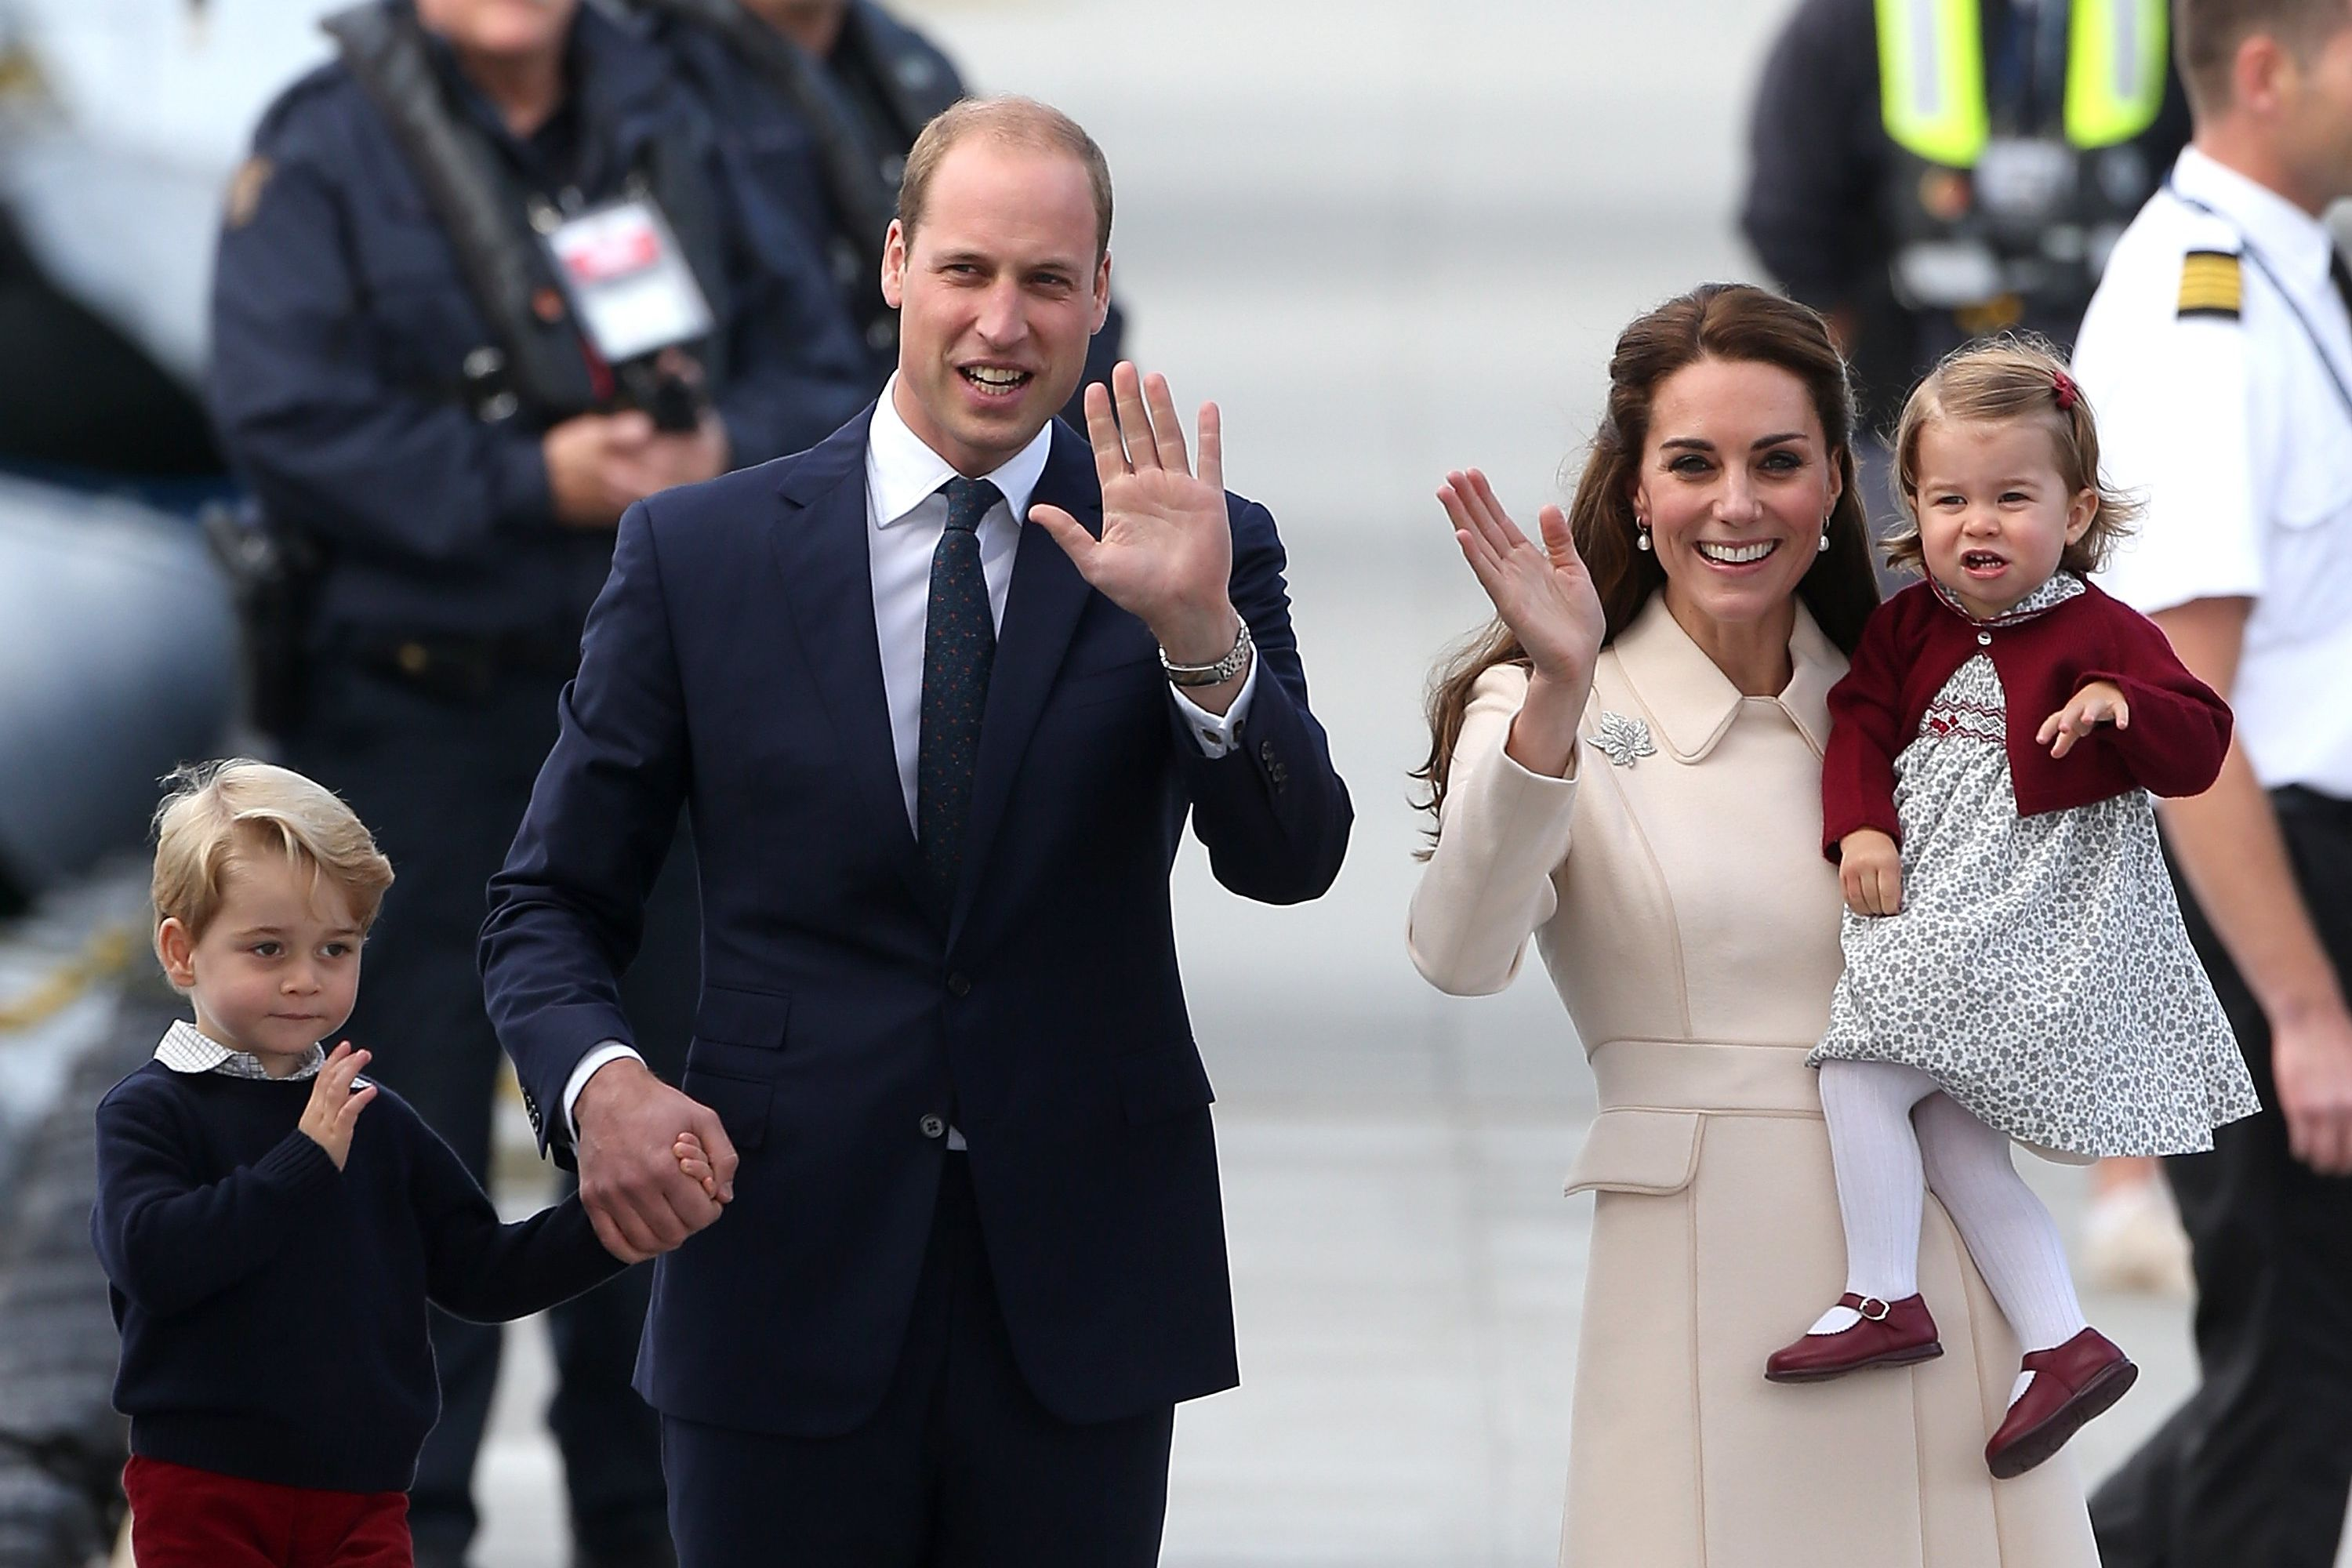 Prince William Opens Up About Parenthood and Giving His Children a Normal Life